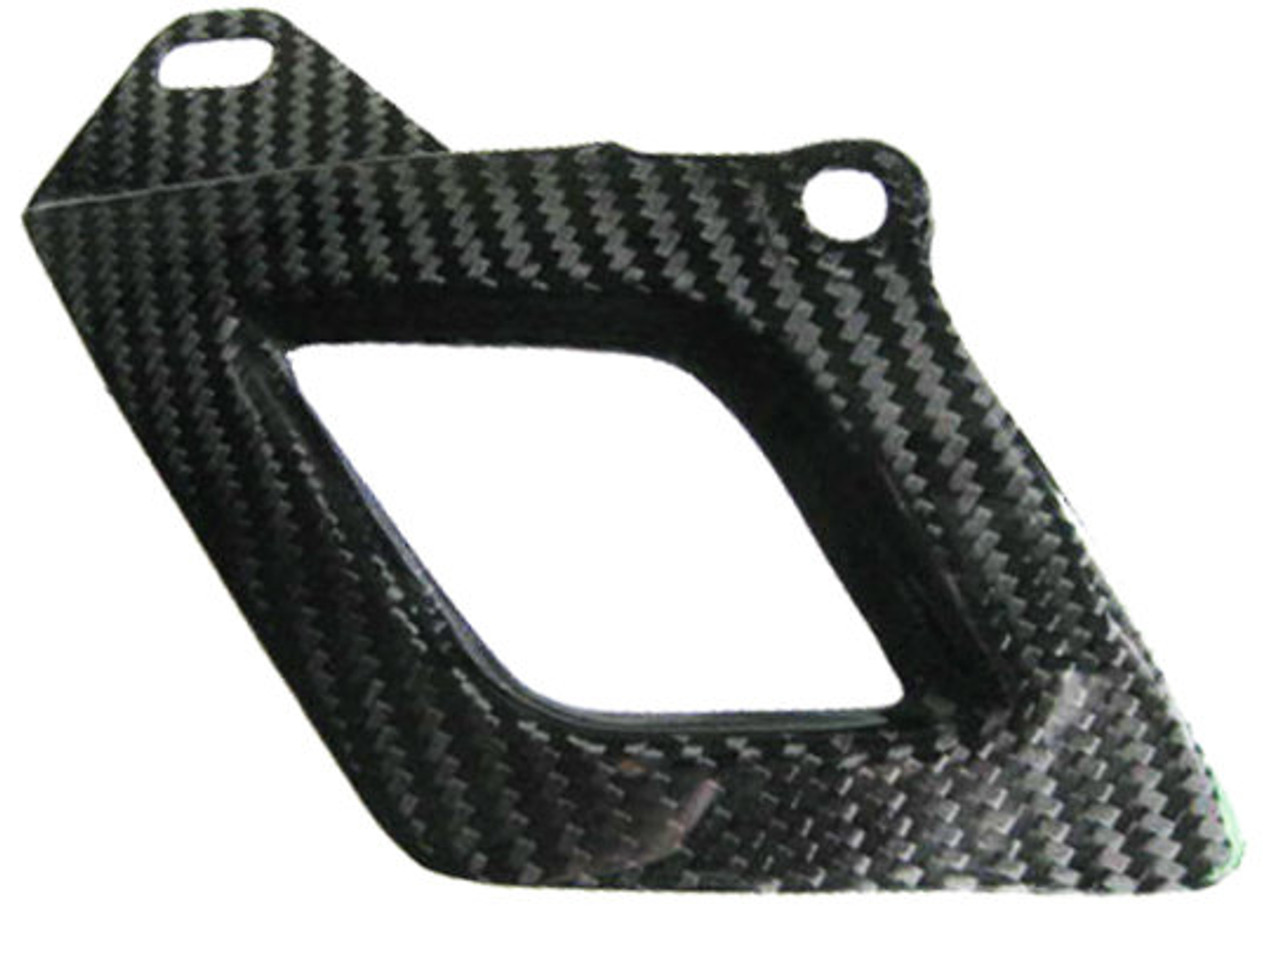 Glossy Twill Weave Carbon Fiber Lower Chain Guard for Aprilia RSV4 2009+, Tuono V4 2011+